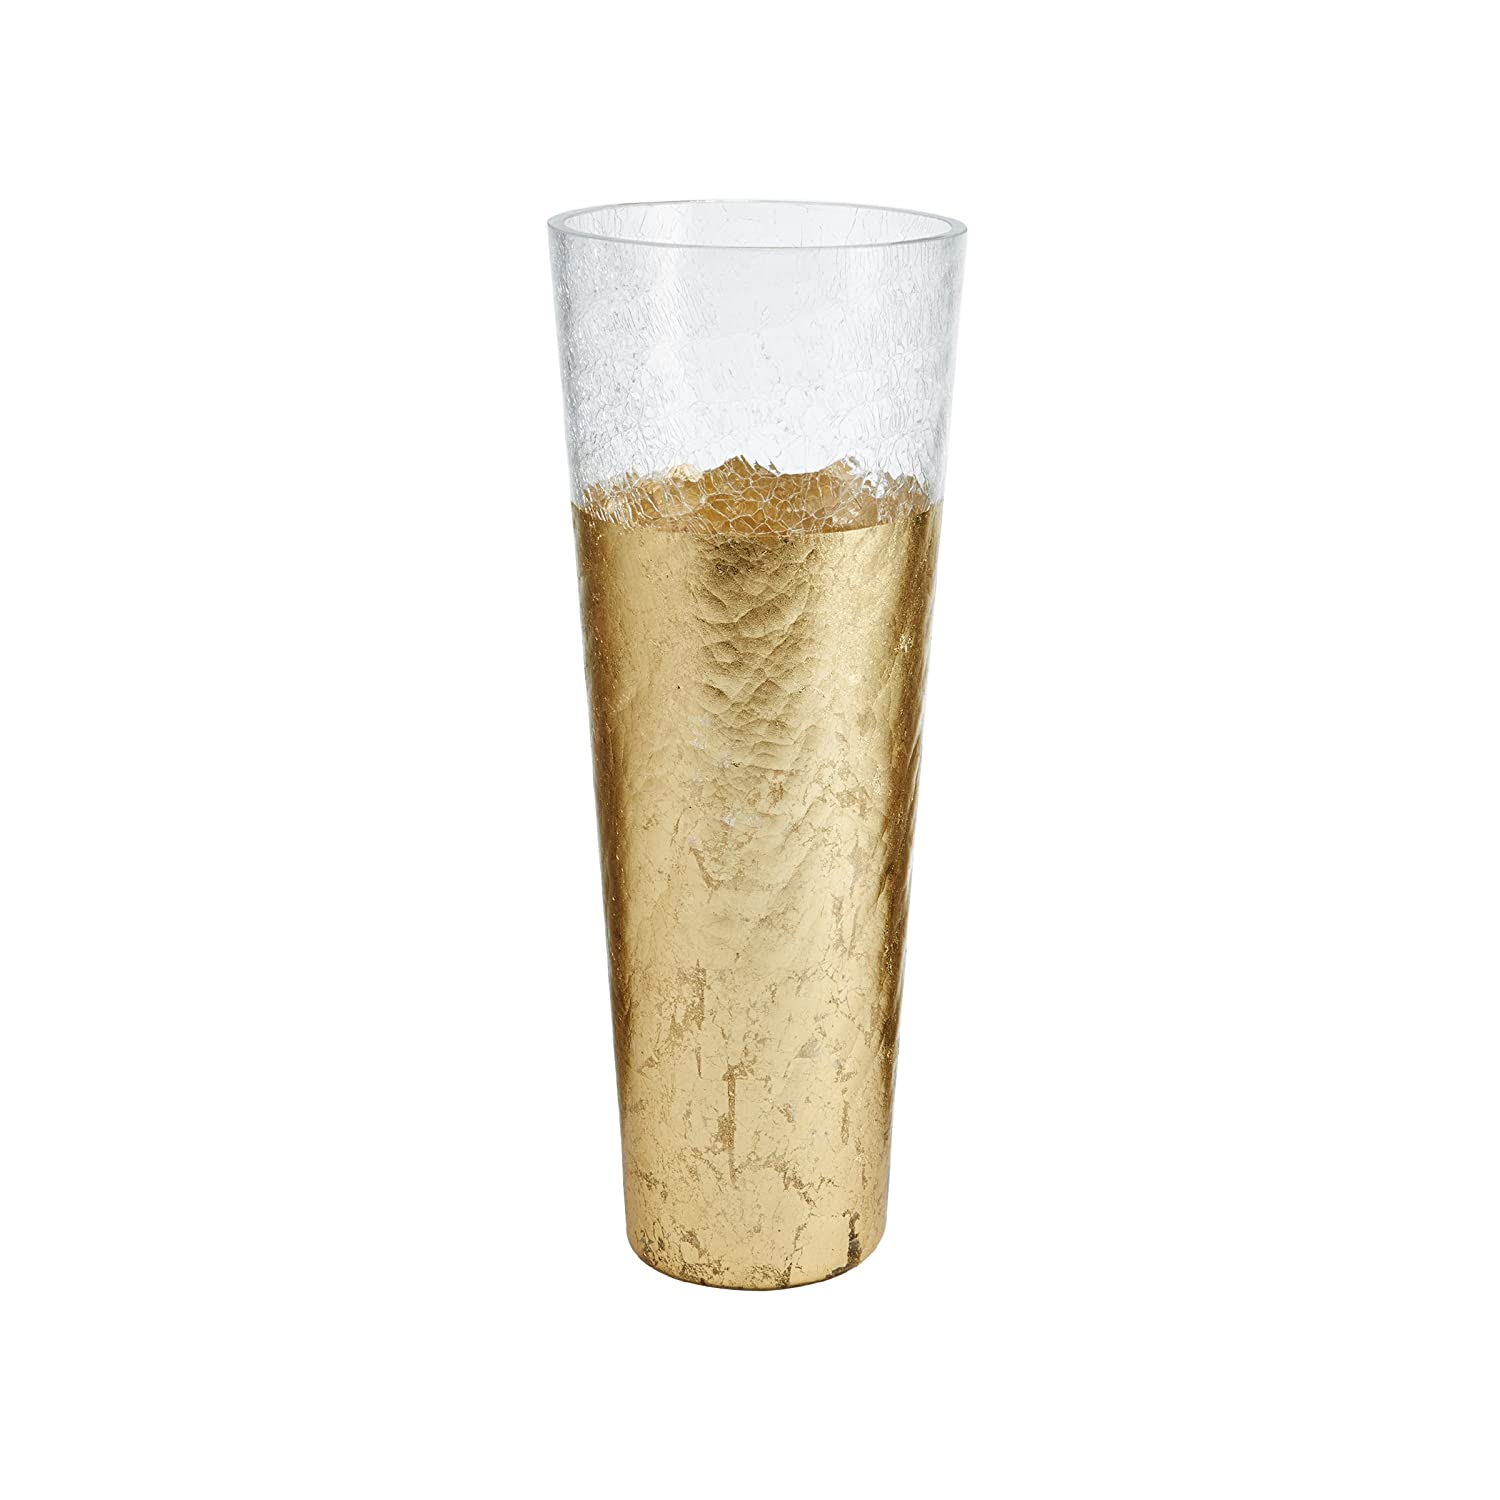 Mikasa 5194525 Crackle Gold Glass Hurricane Candle Holder, 6-inch-by-10-Inch Lifetime Brands